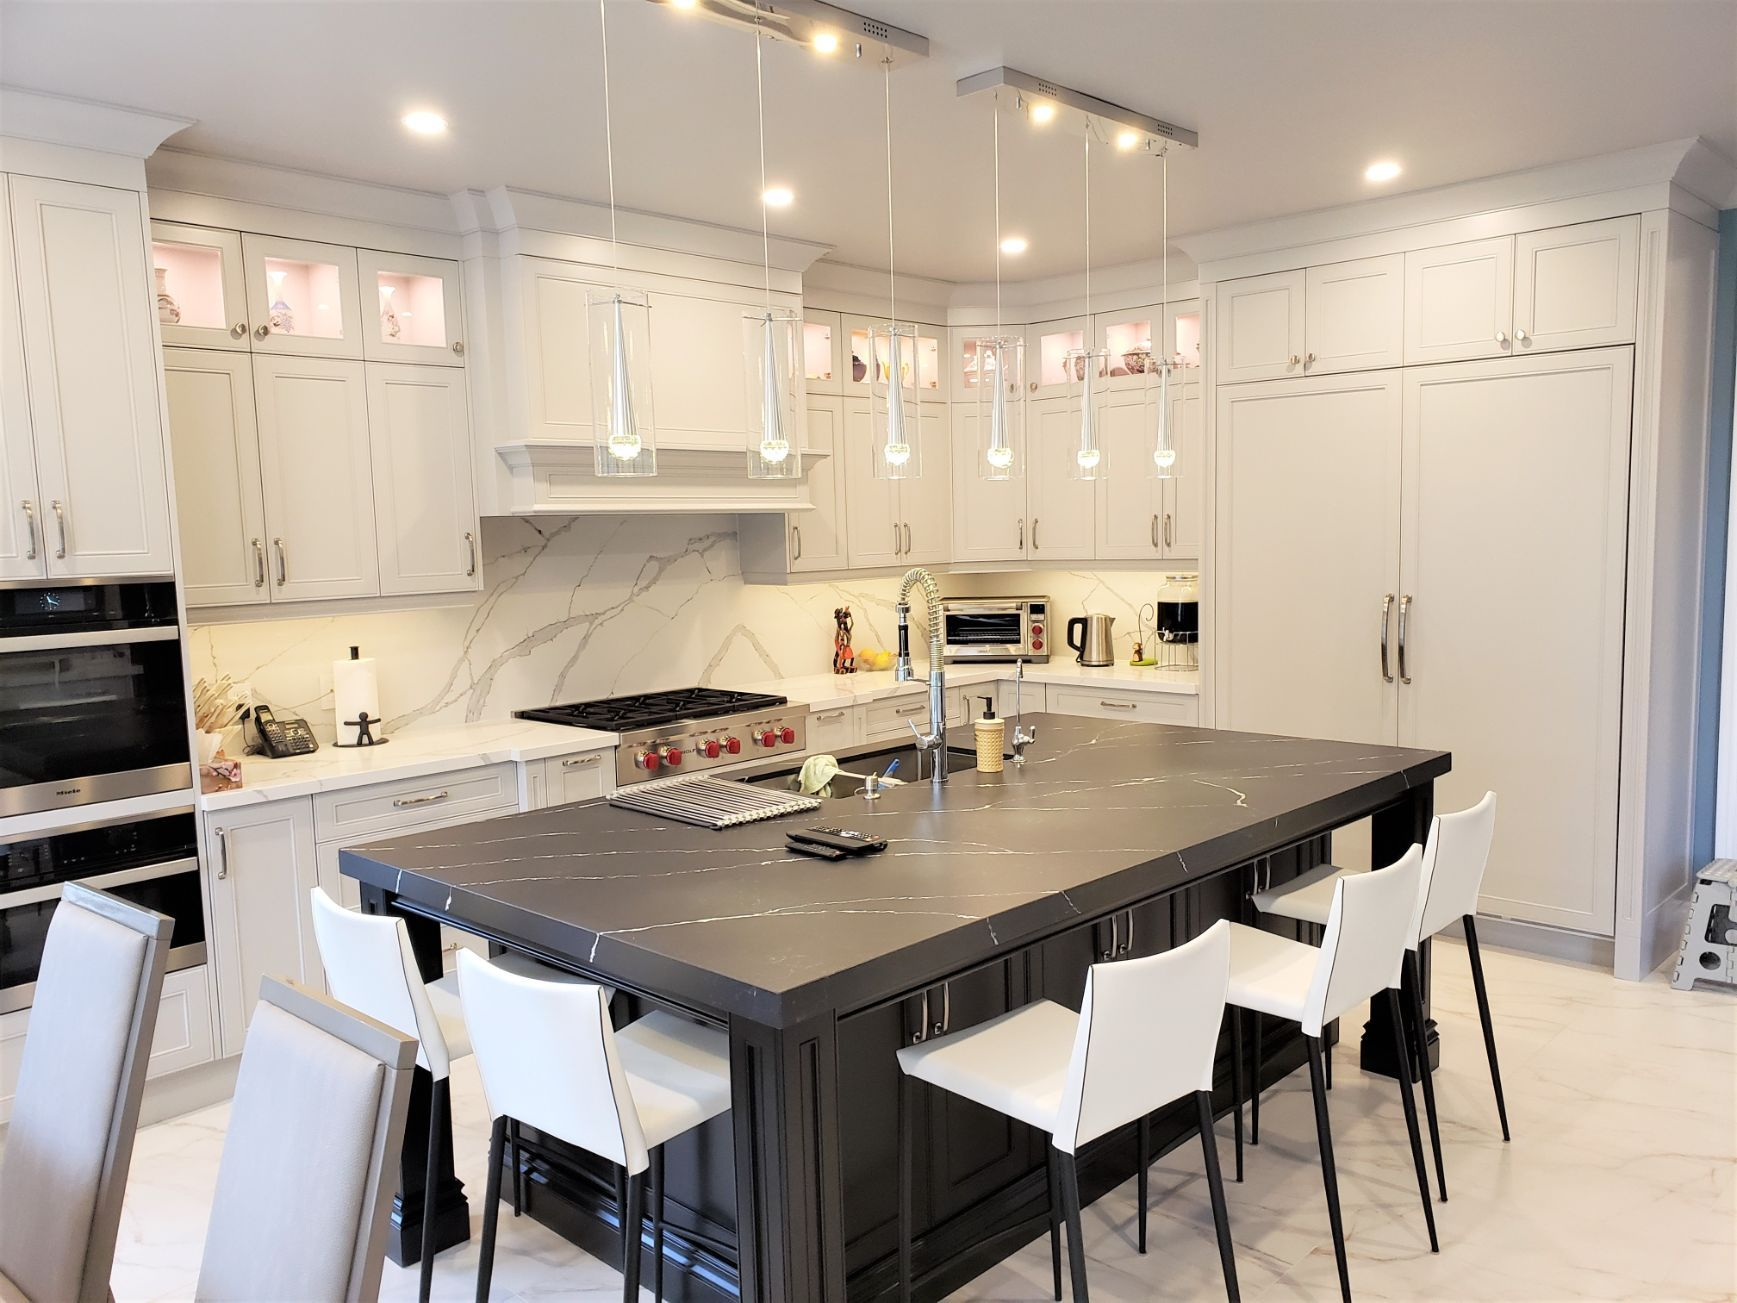 White kitchen with lot of lights